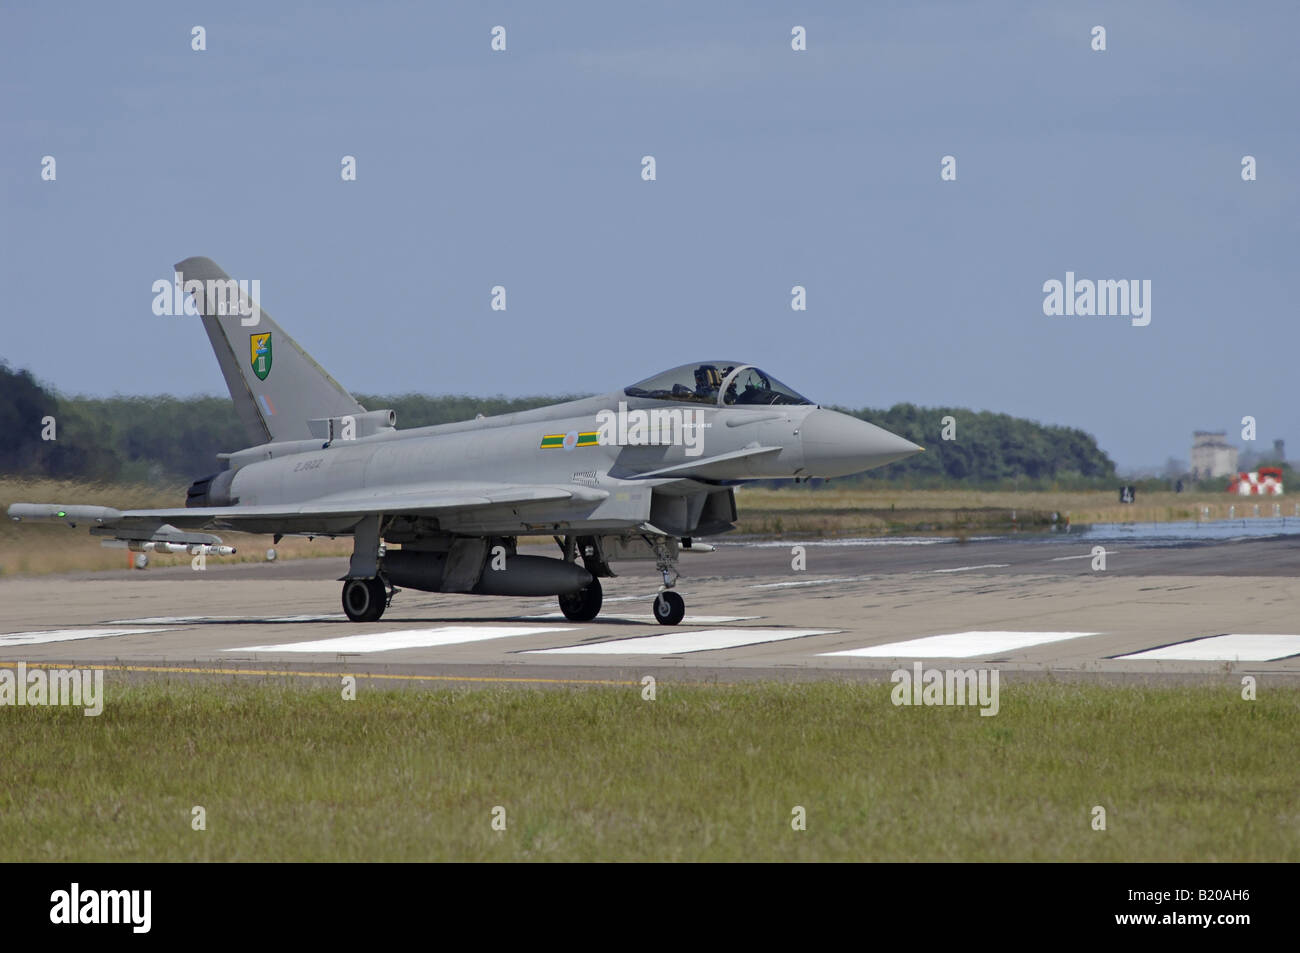 UK - Air Force Eurofighter EF-2000 Typhoon F2 ZJ922/QO-C 3 Squadron RAF Coningsby England - Stock Image